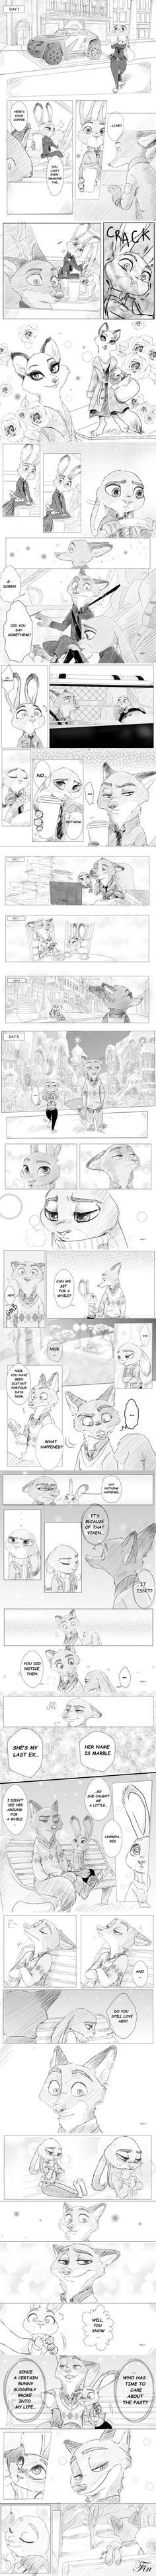 Newest Zootopia comic (by Rem289)